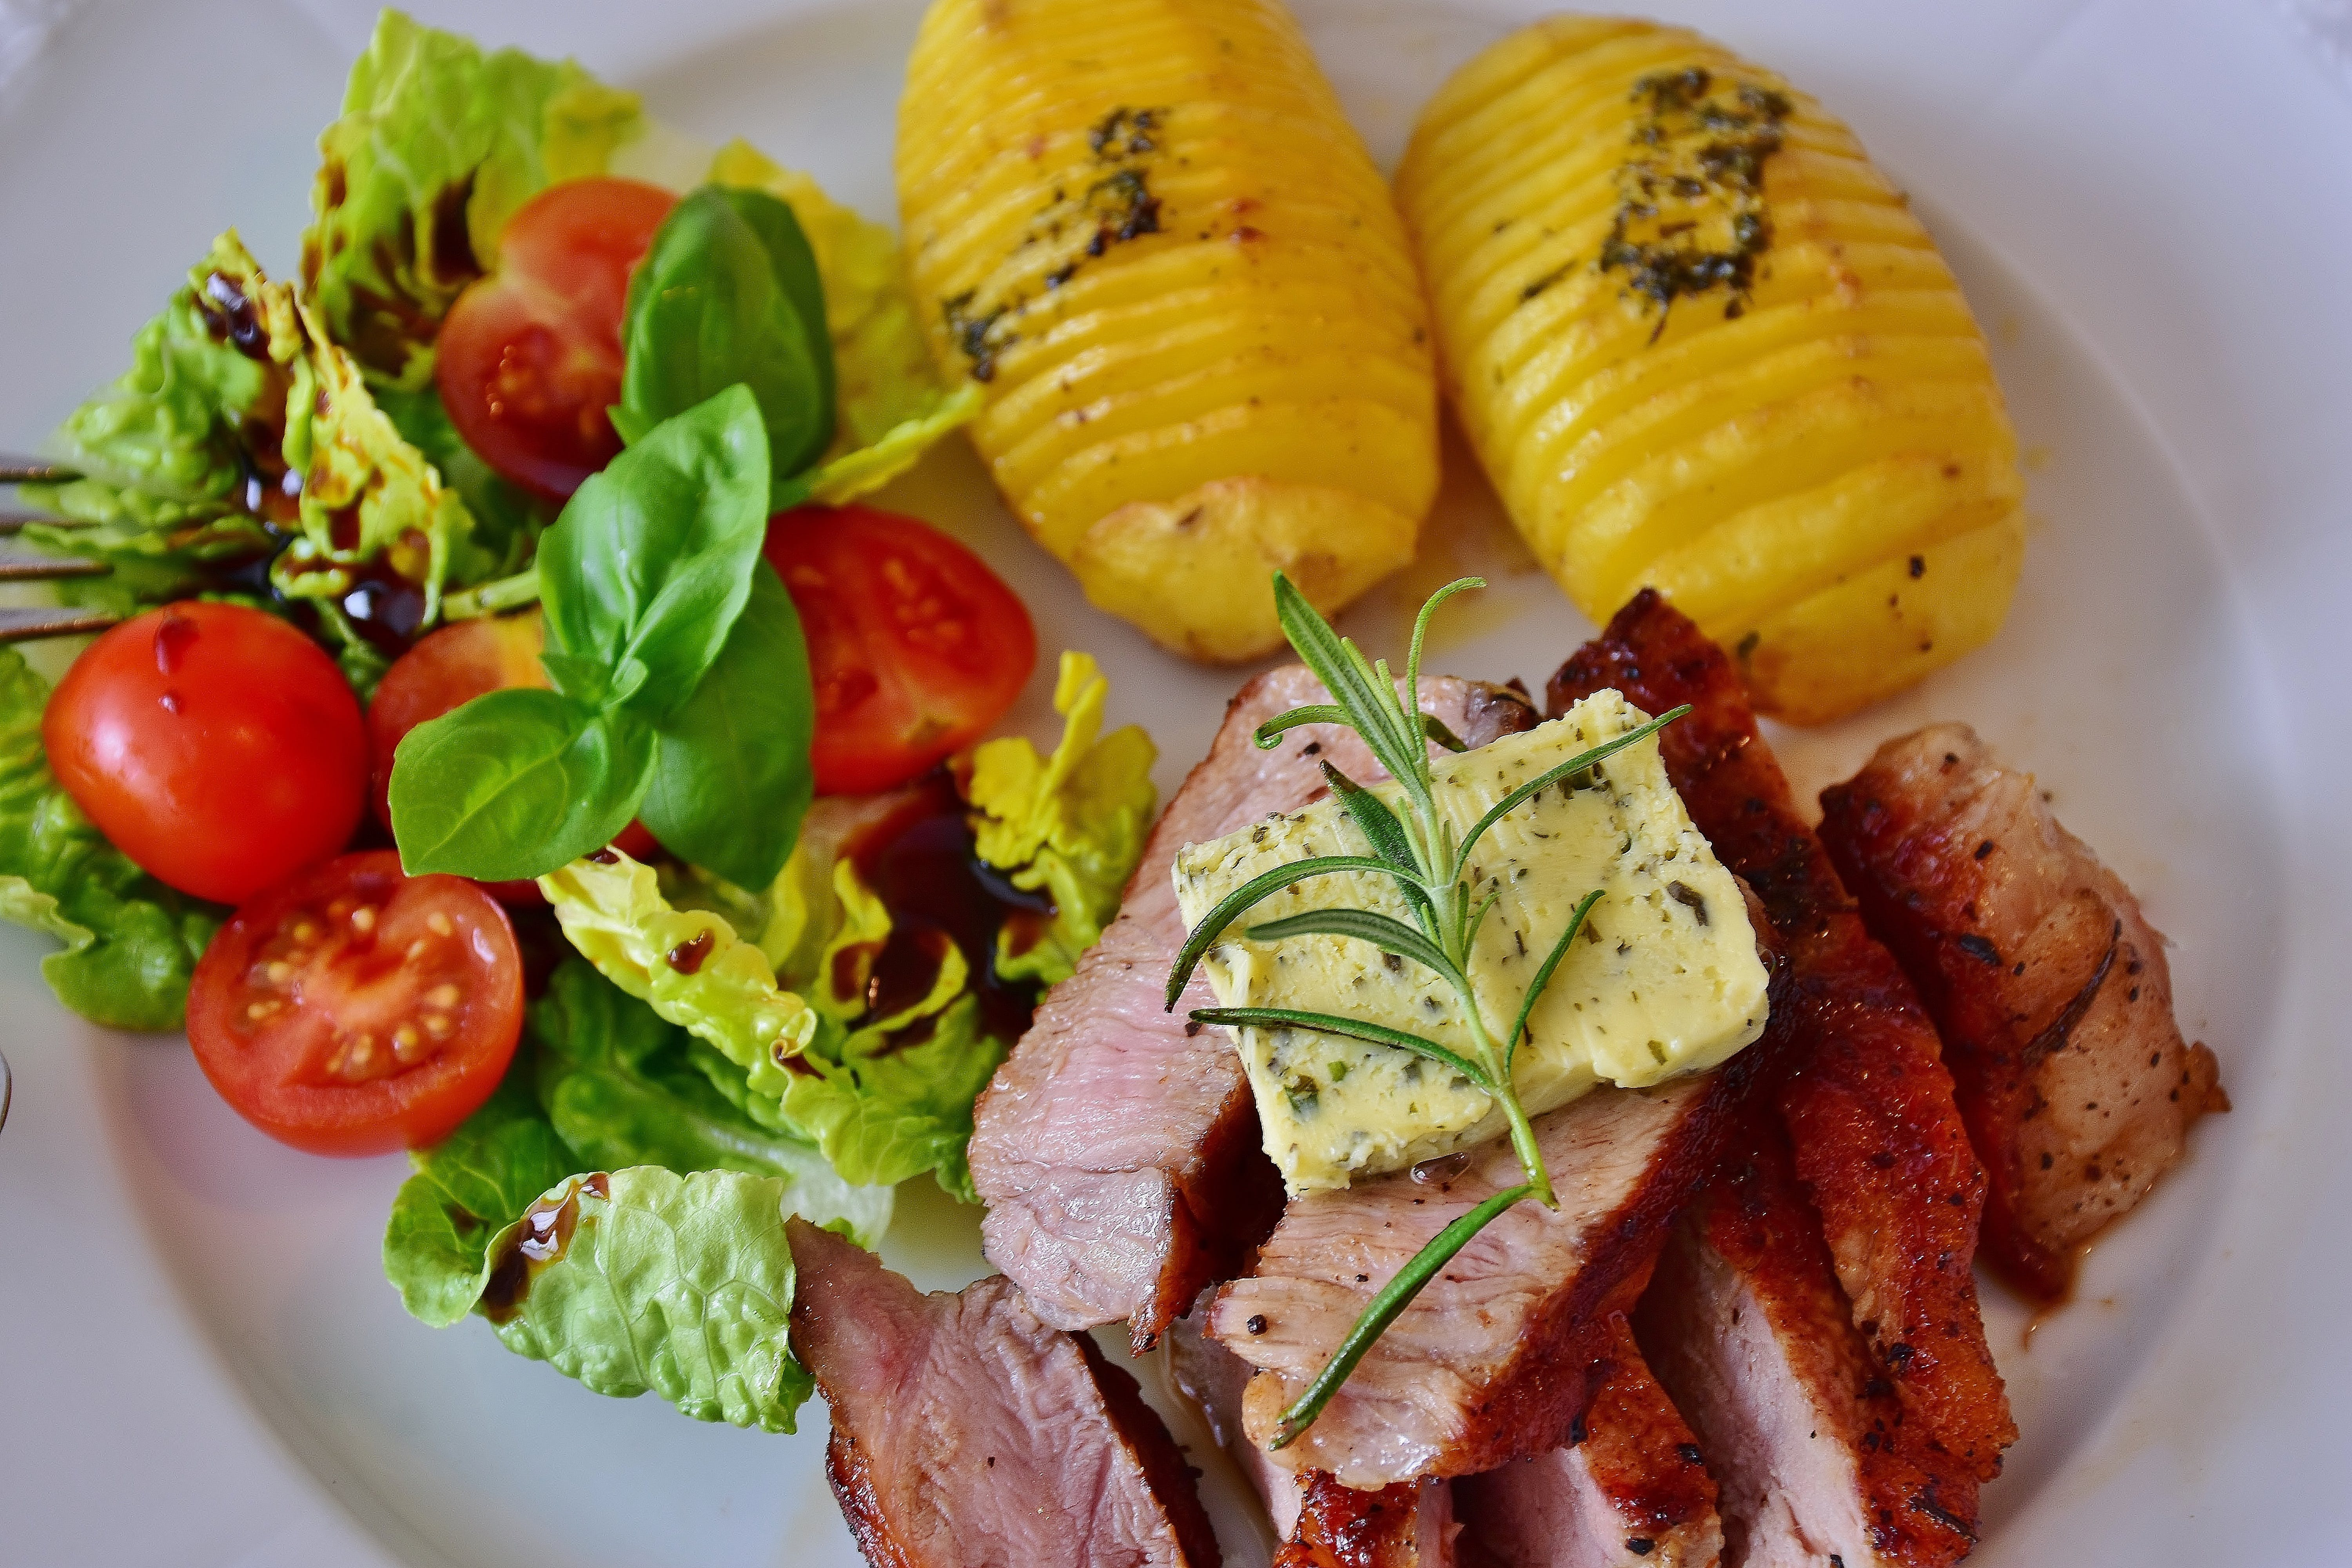 Steak With Salad and Potato